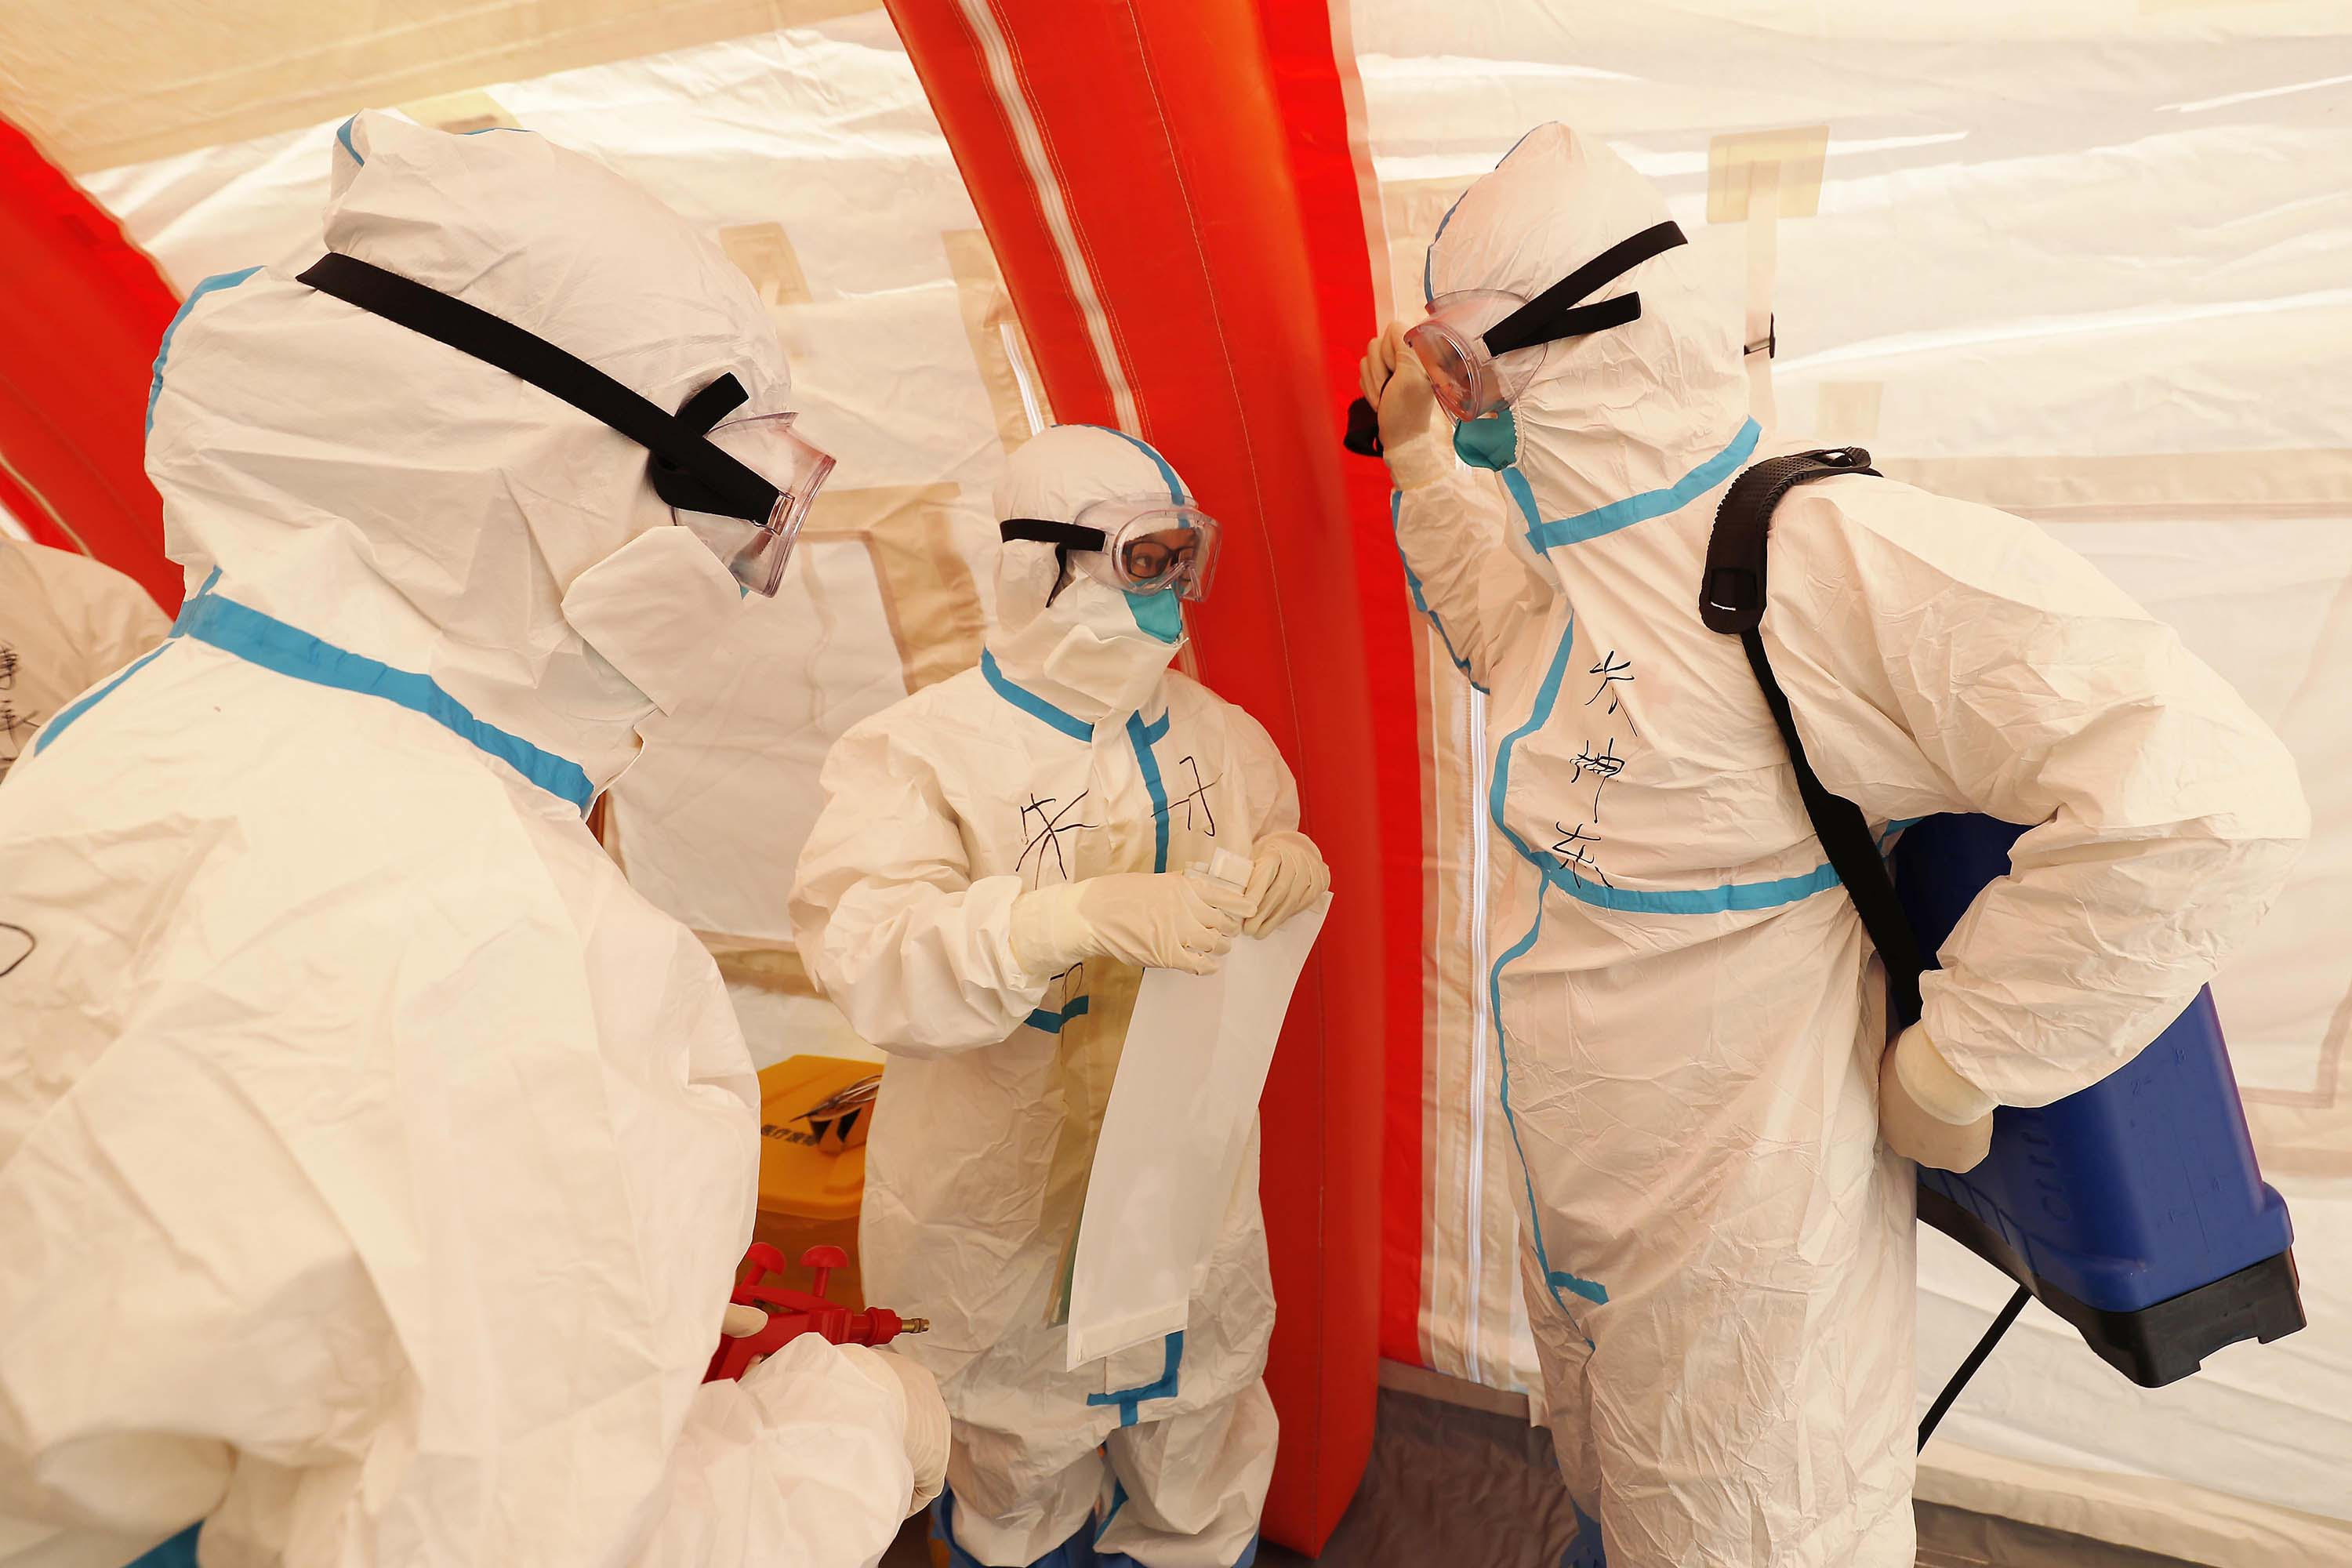 Medical workers participate in a public health emergency drill at a hospital in Shanghai, on October 24.